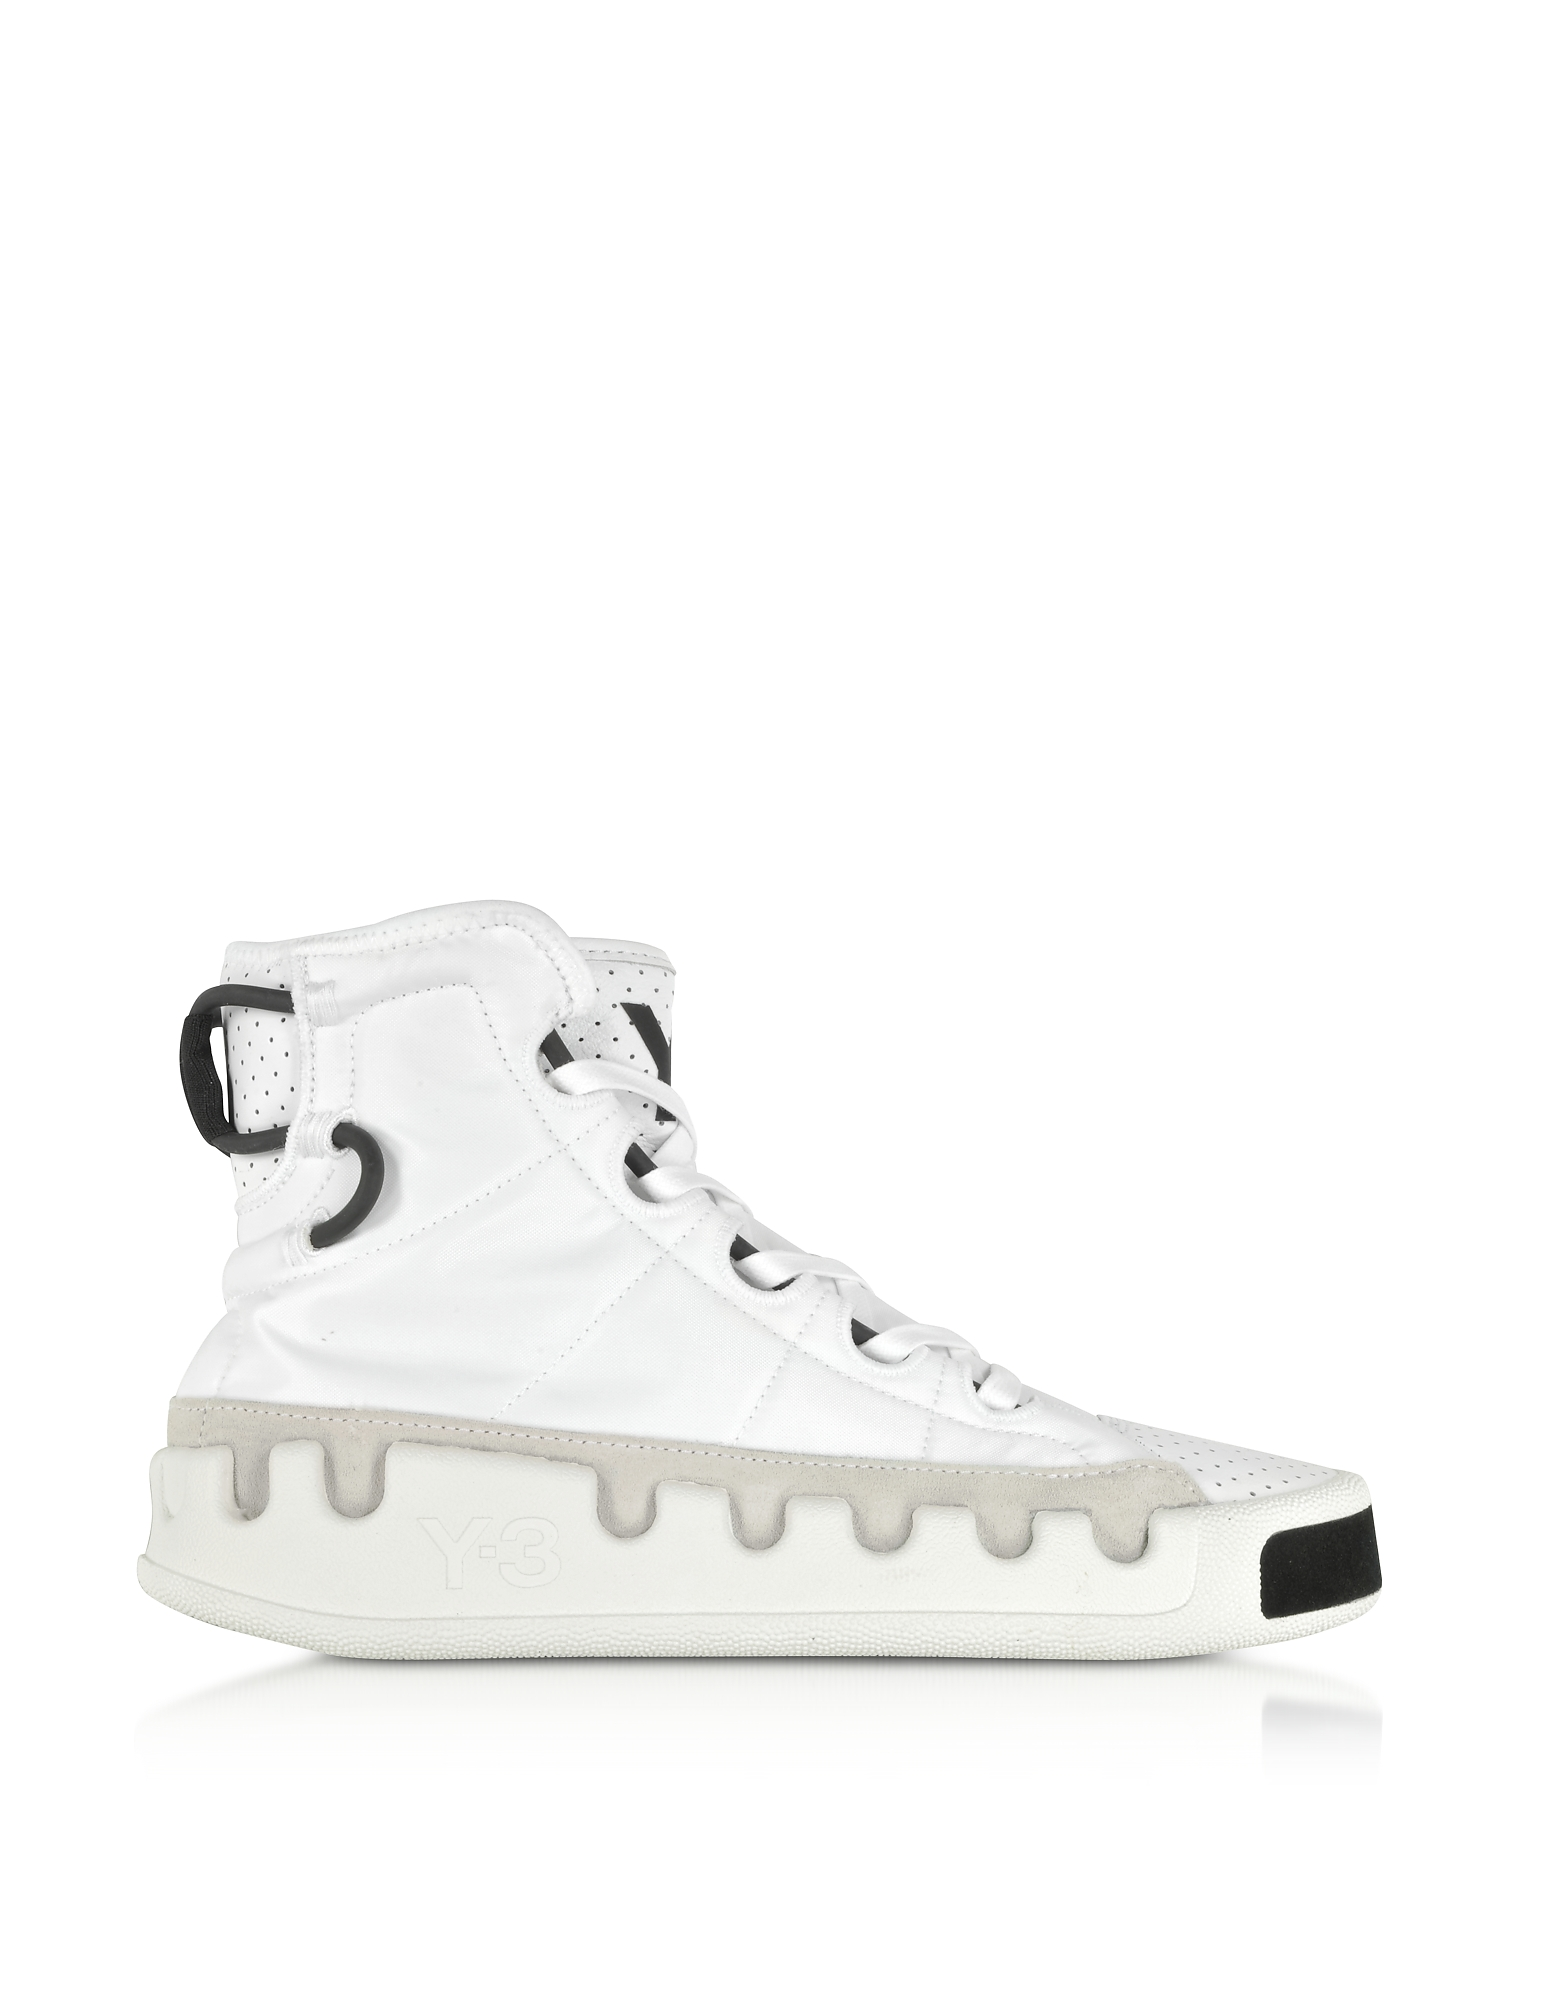 Y-3 Kasabaru White Nylon High-Top Men's Sneakers